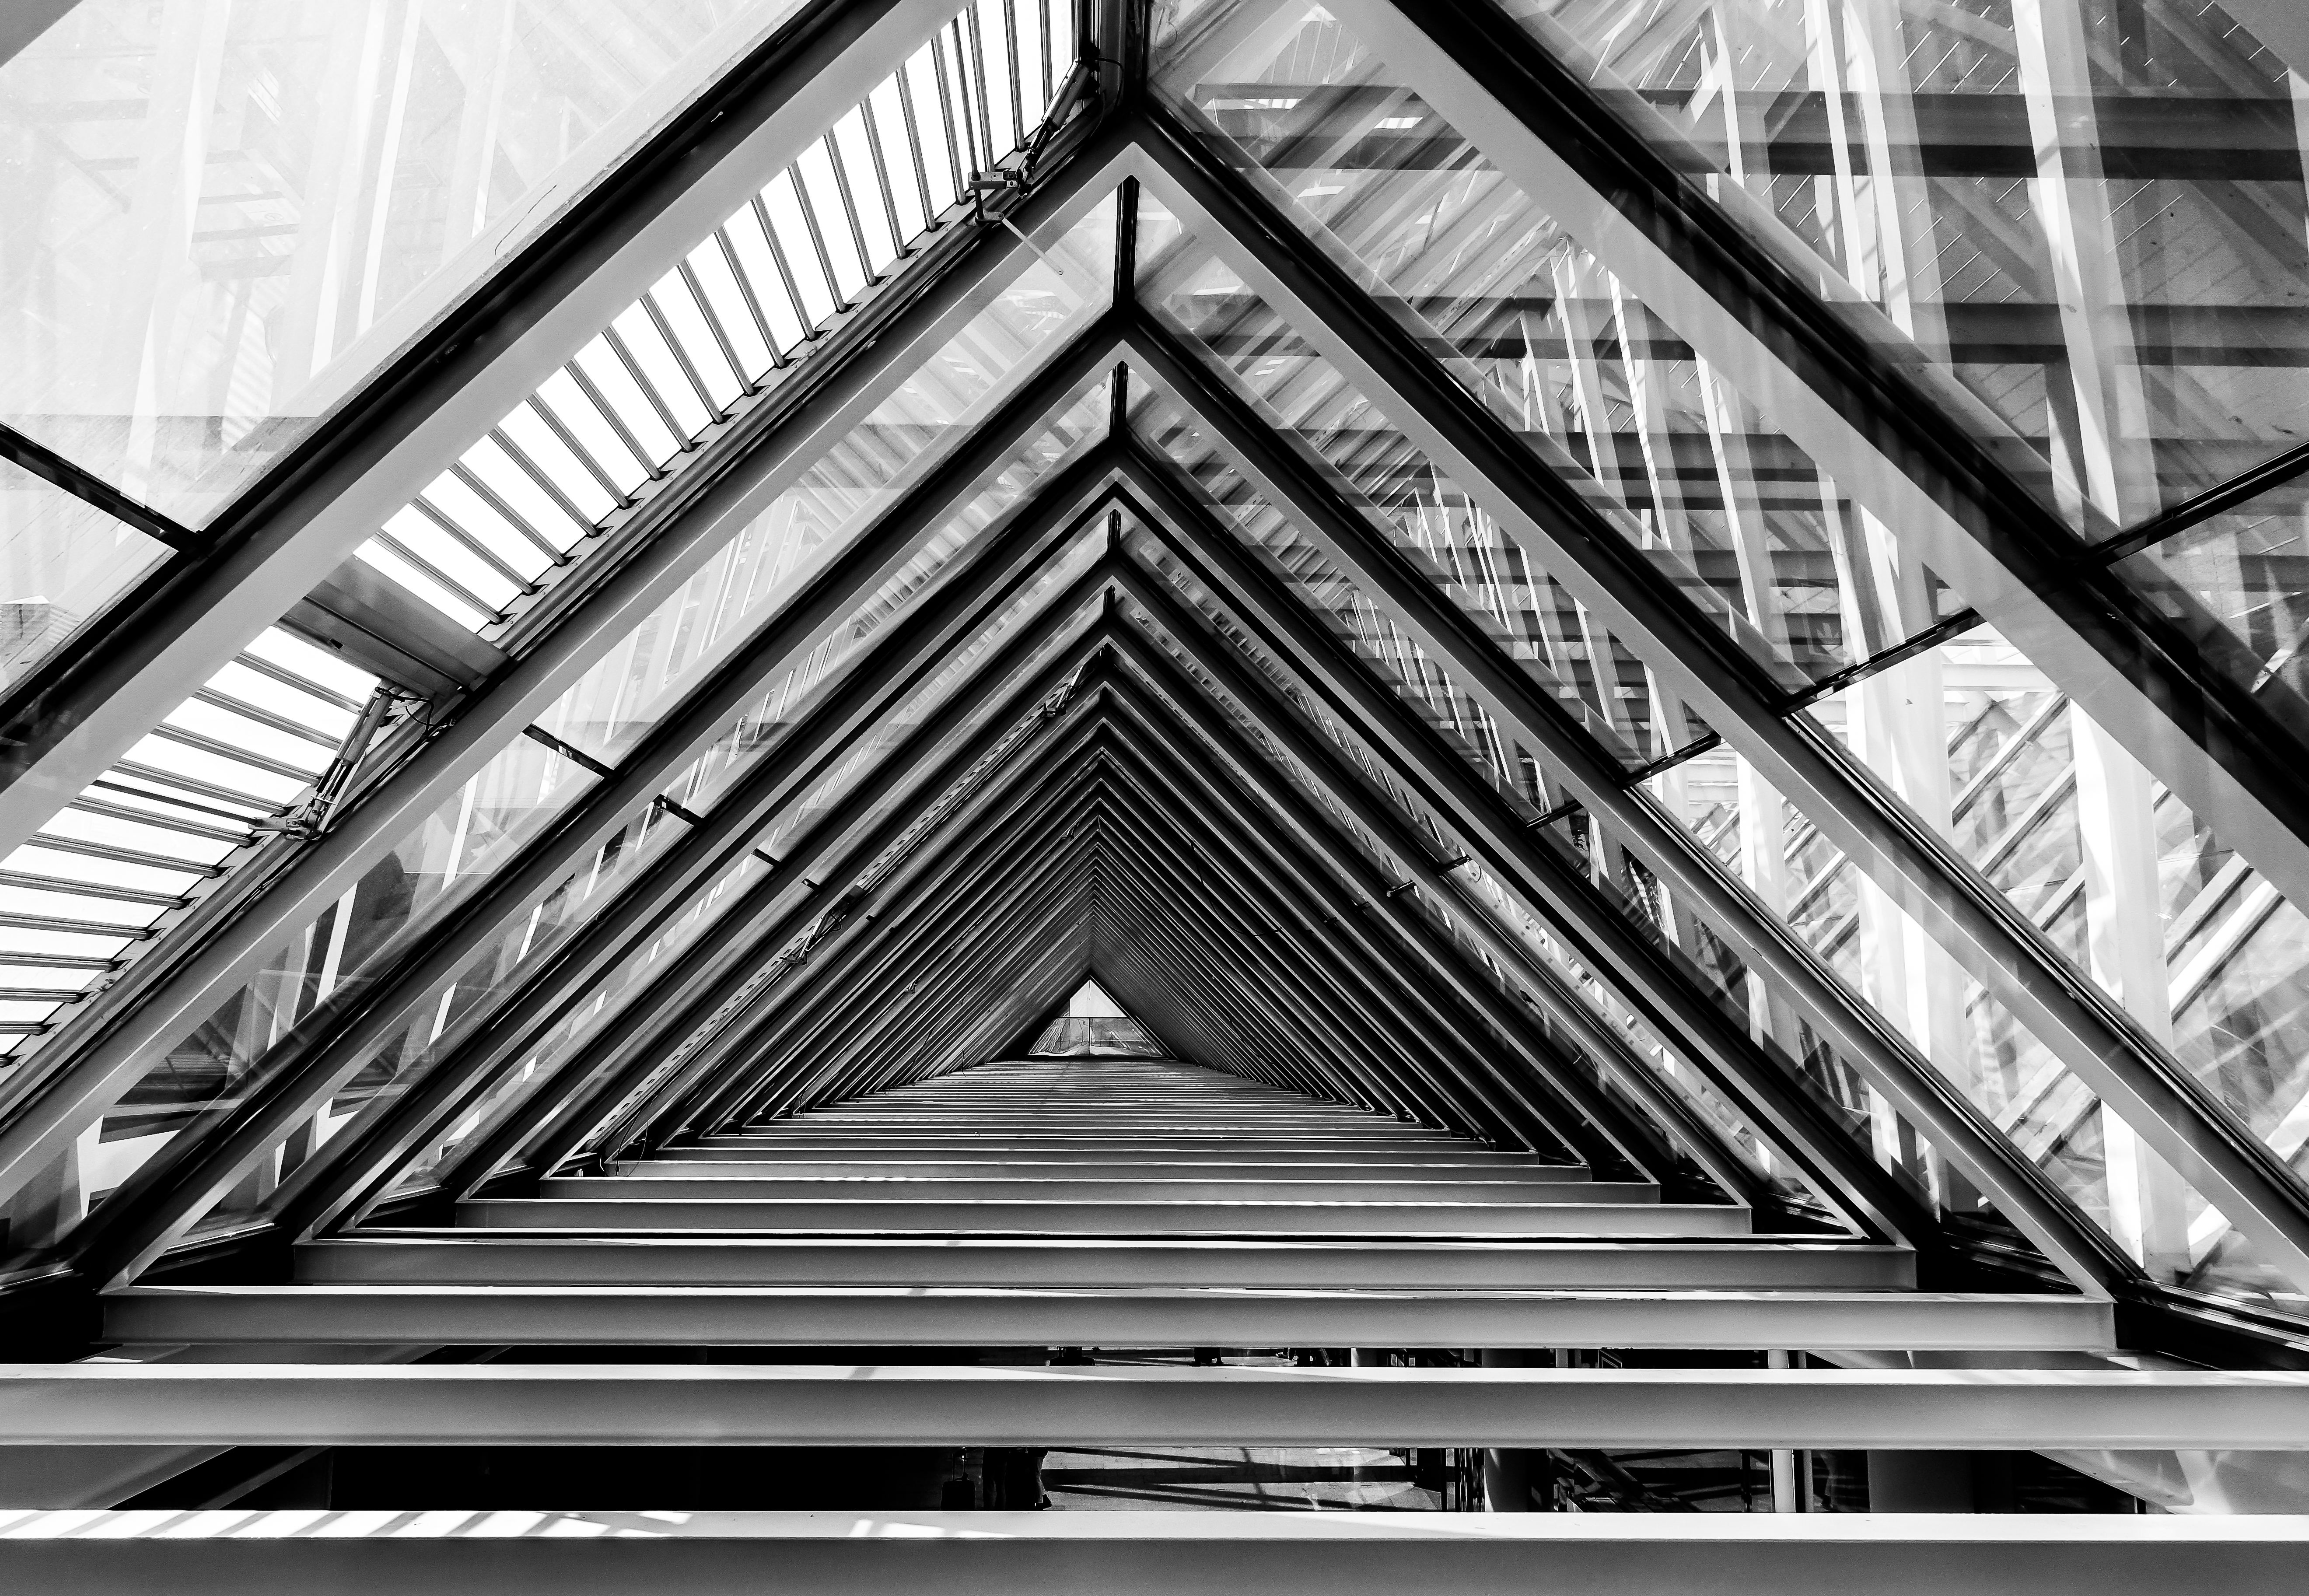 How to Use Trigonometry in Architecture